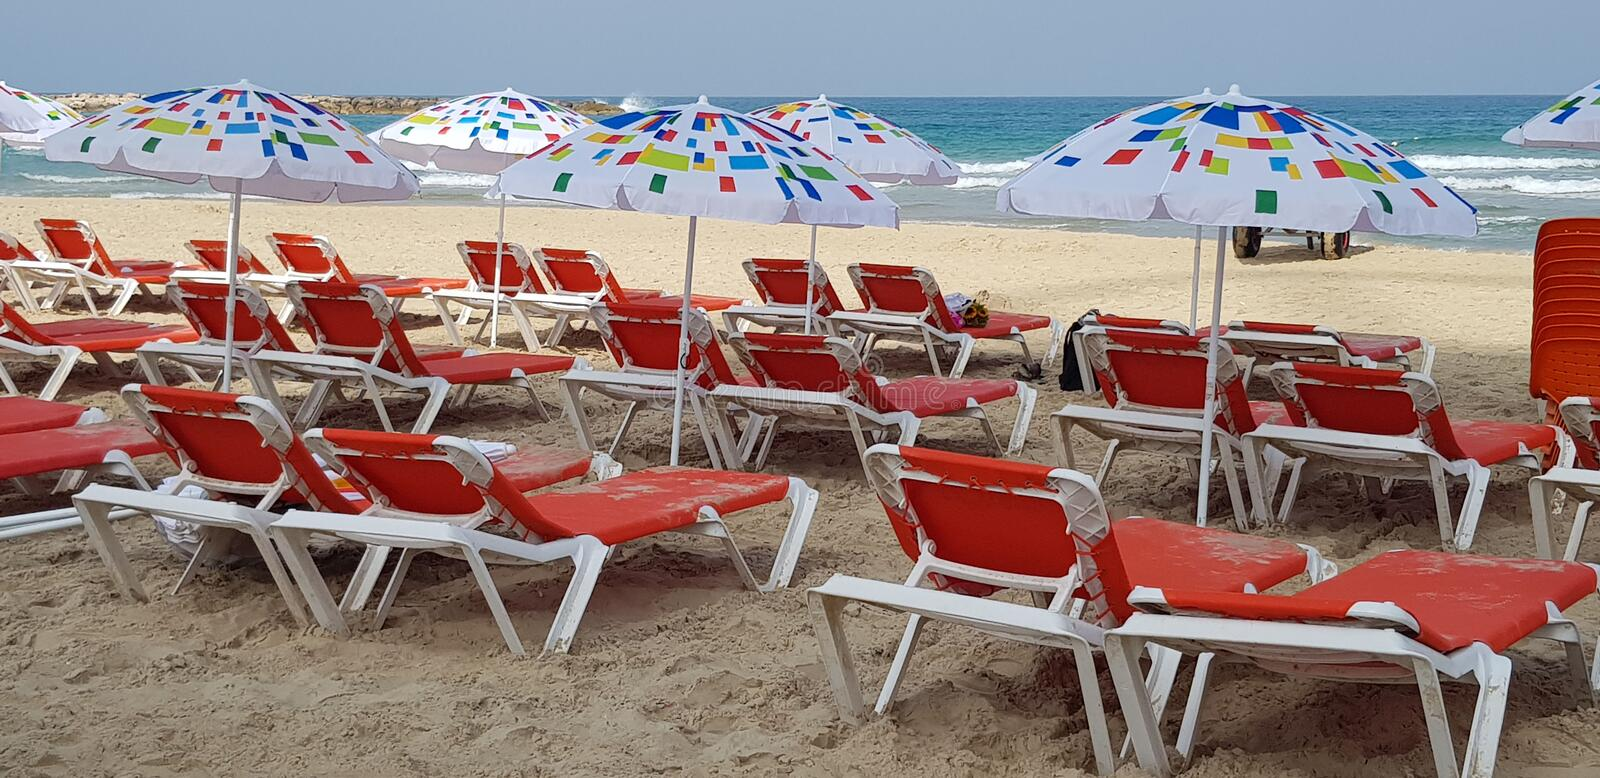 Umbrellas and orange chairs on the beach near the sea royalty free stock photo